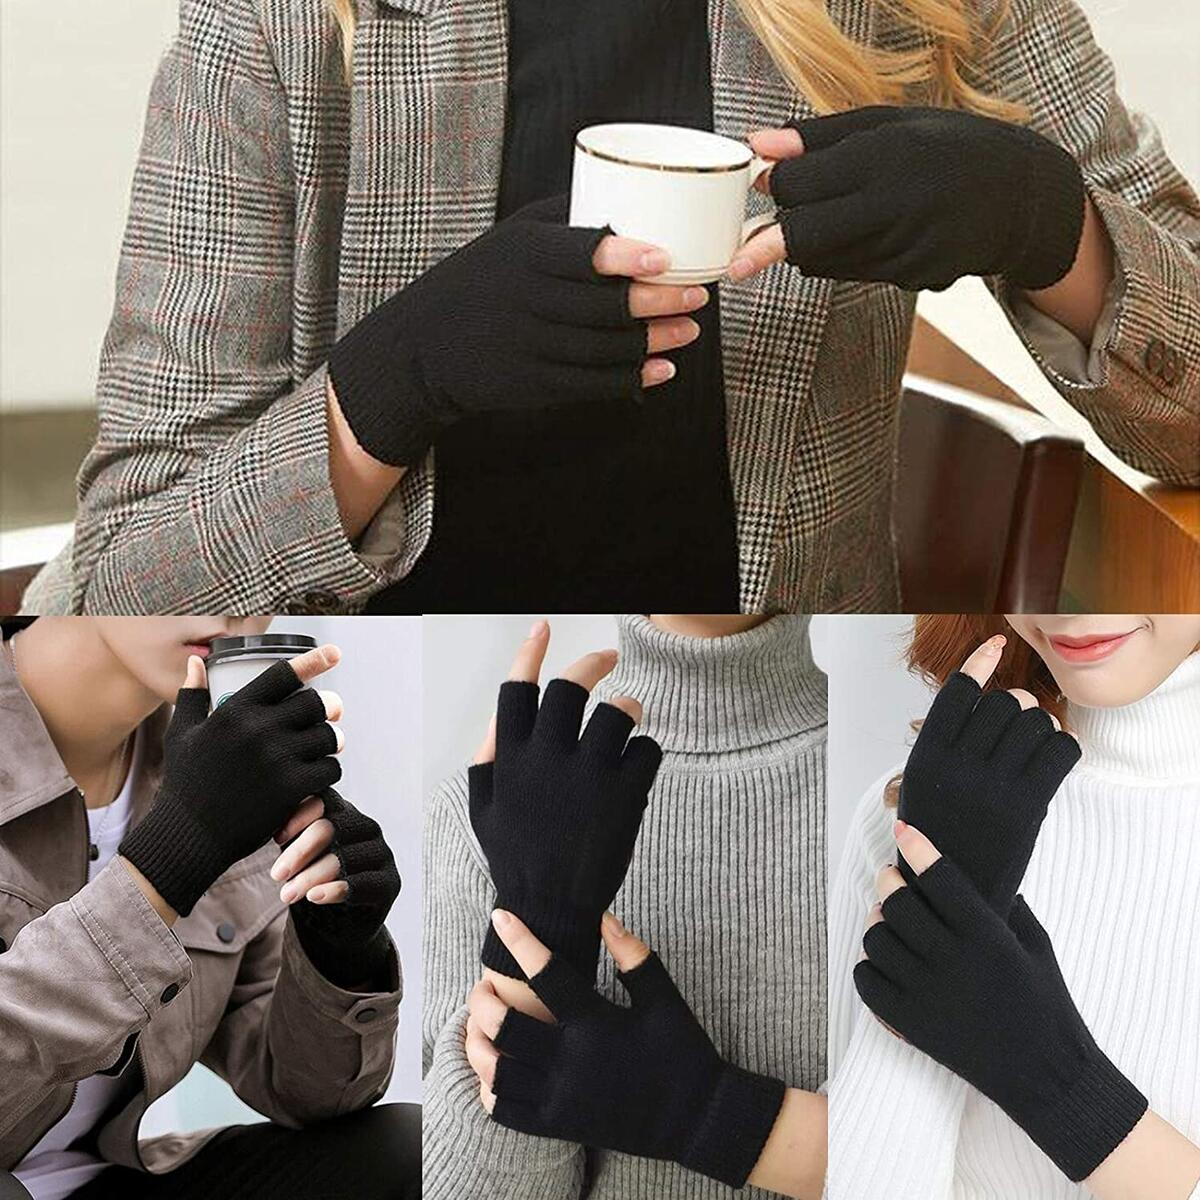 2 Pair Half Finger Gloves Winter Knit Touchscreen Warm Stretchy Mittens Fingerless Gloves in Common Size for Men and Women,black